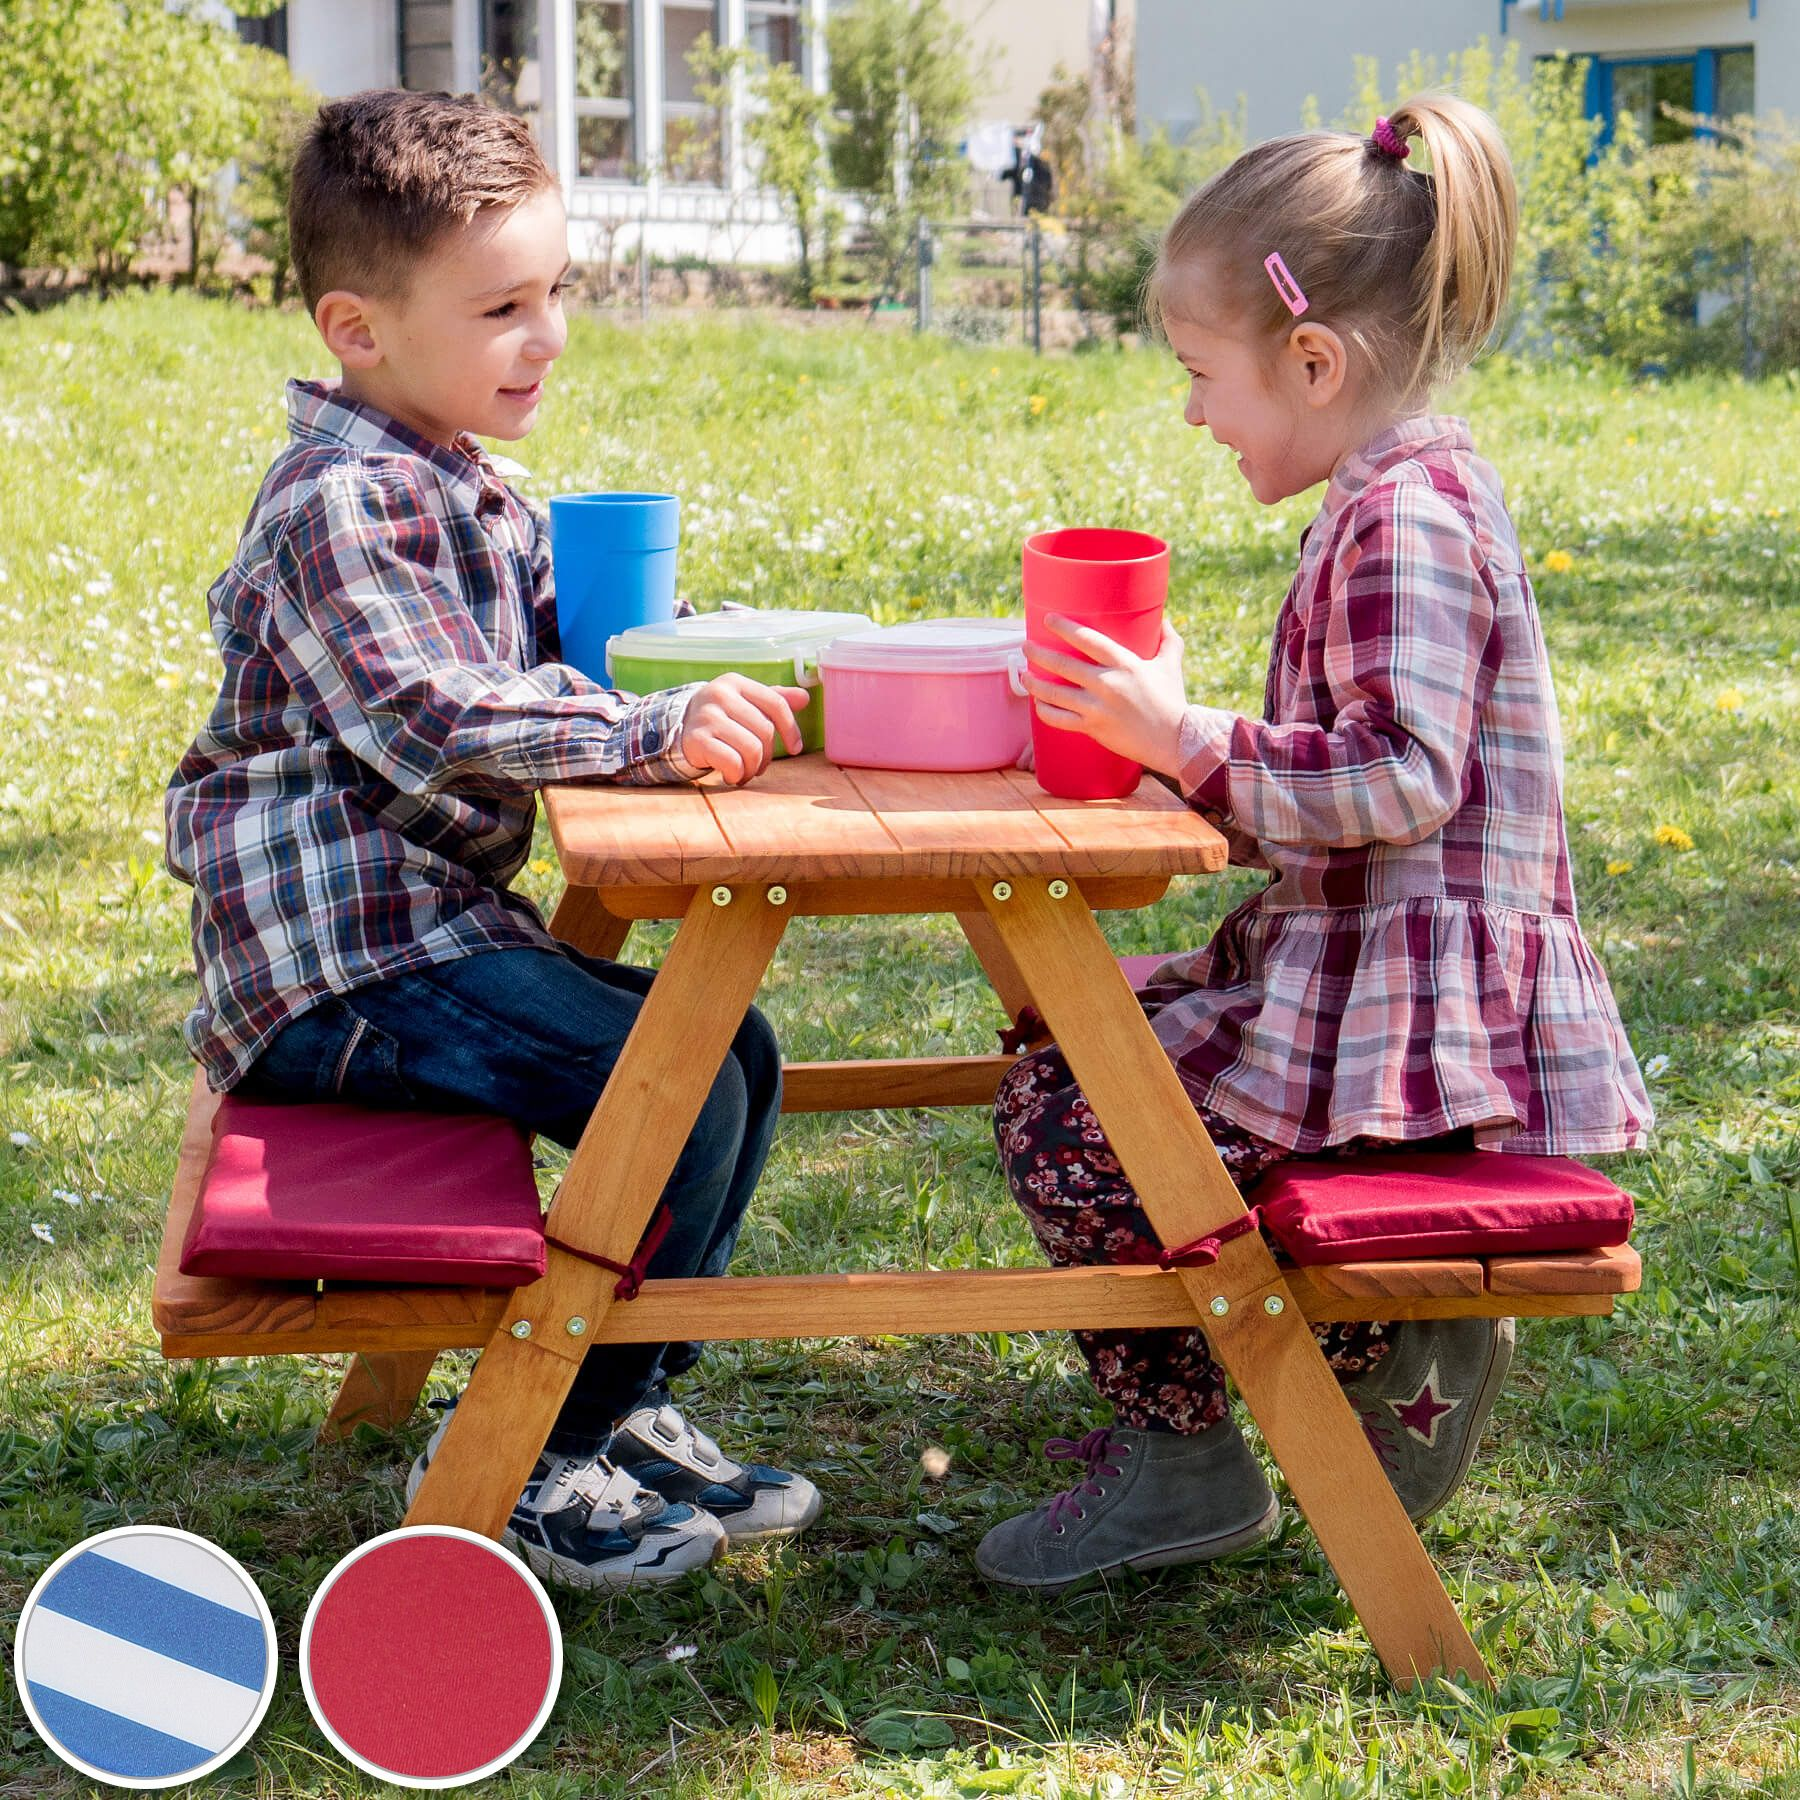 table bancs de pique nique meubles enfants bois jardin avec coussins ebay. Black Bedroom Furniture Sets. Home Design Ideas